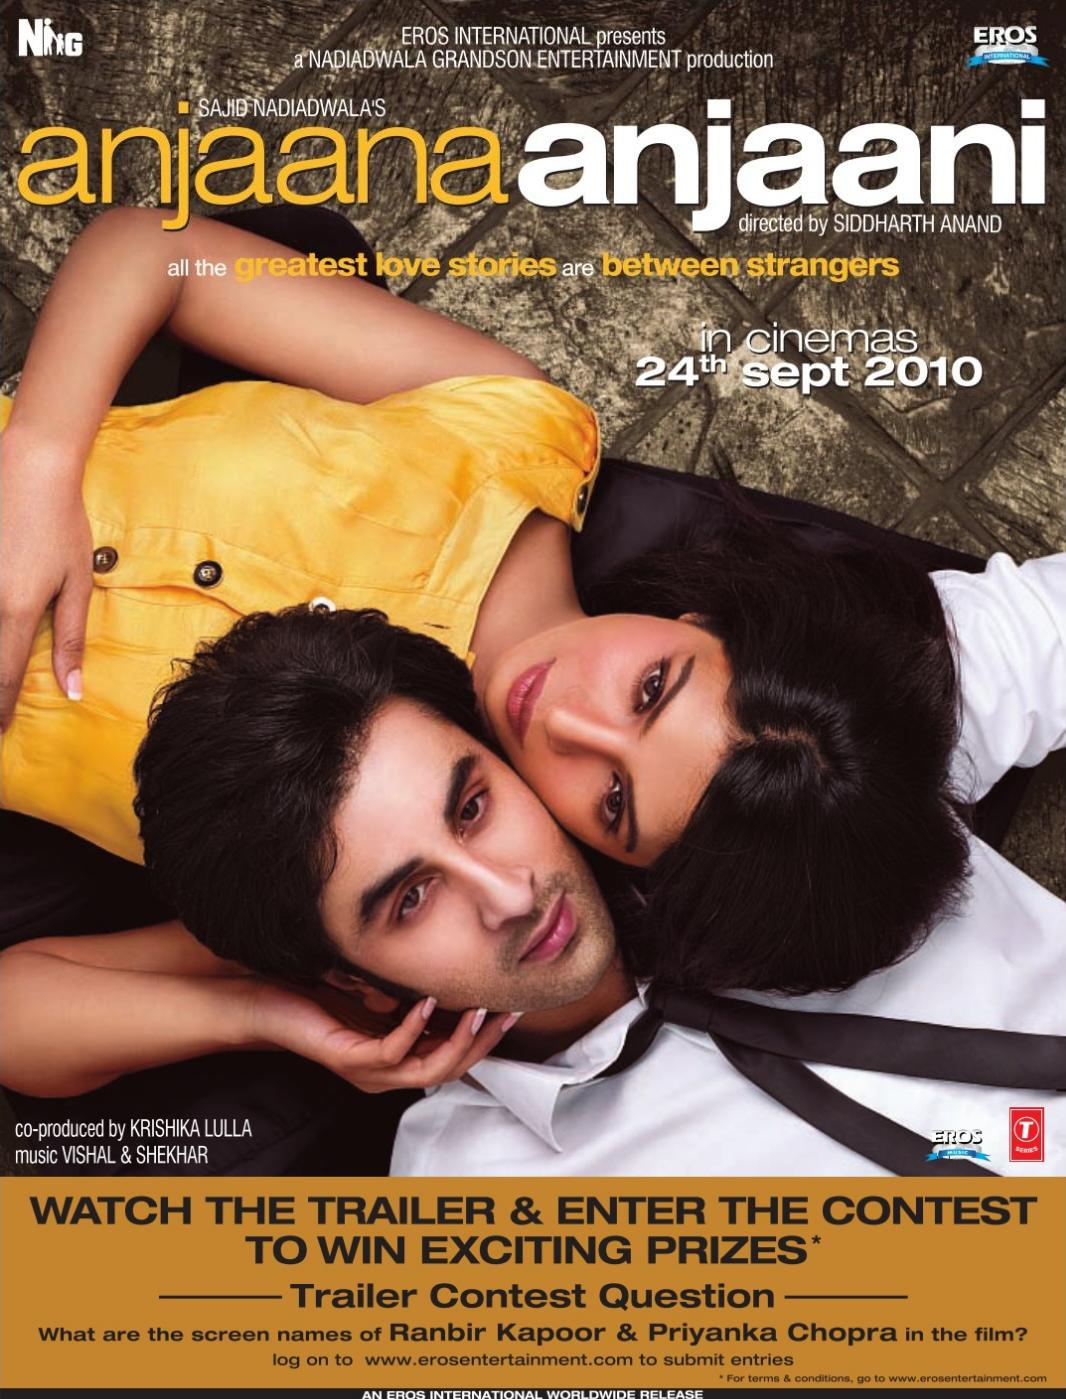 Anjaana Anjaani (2010) Hindi Indian